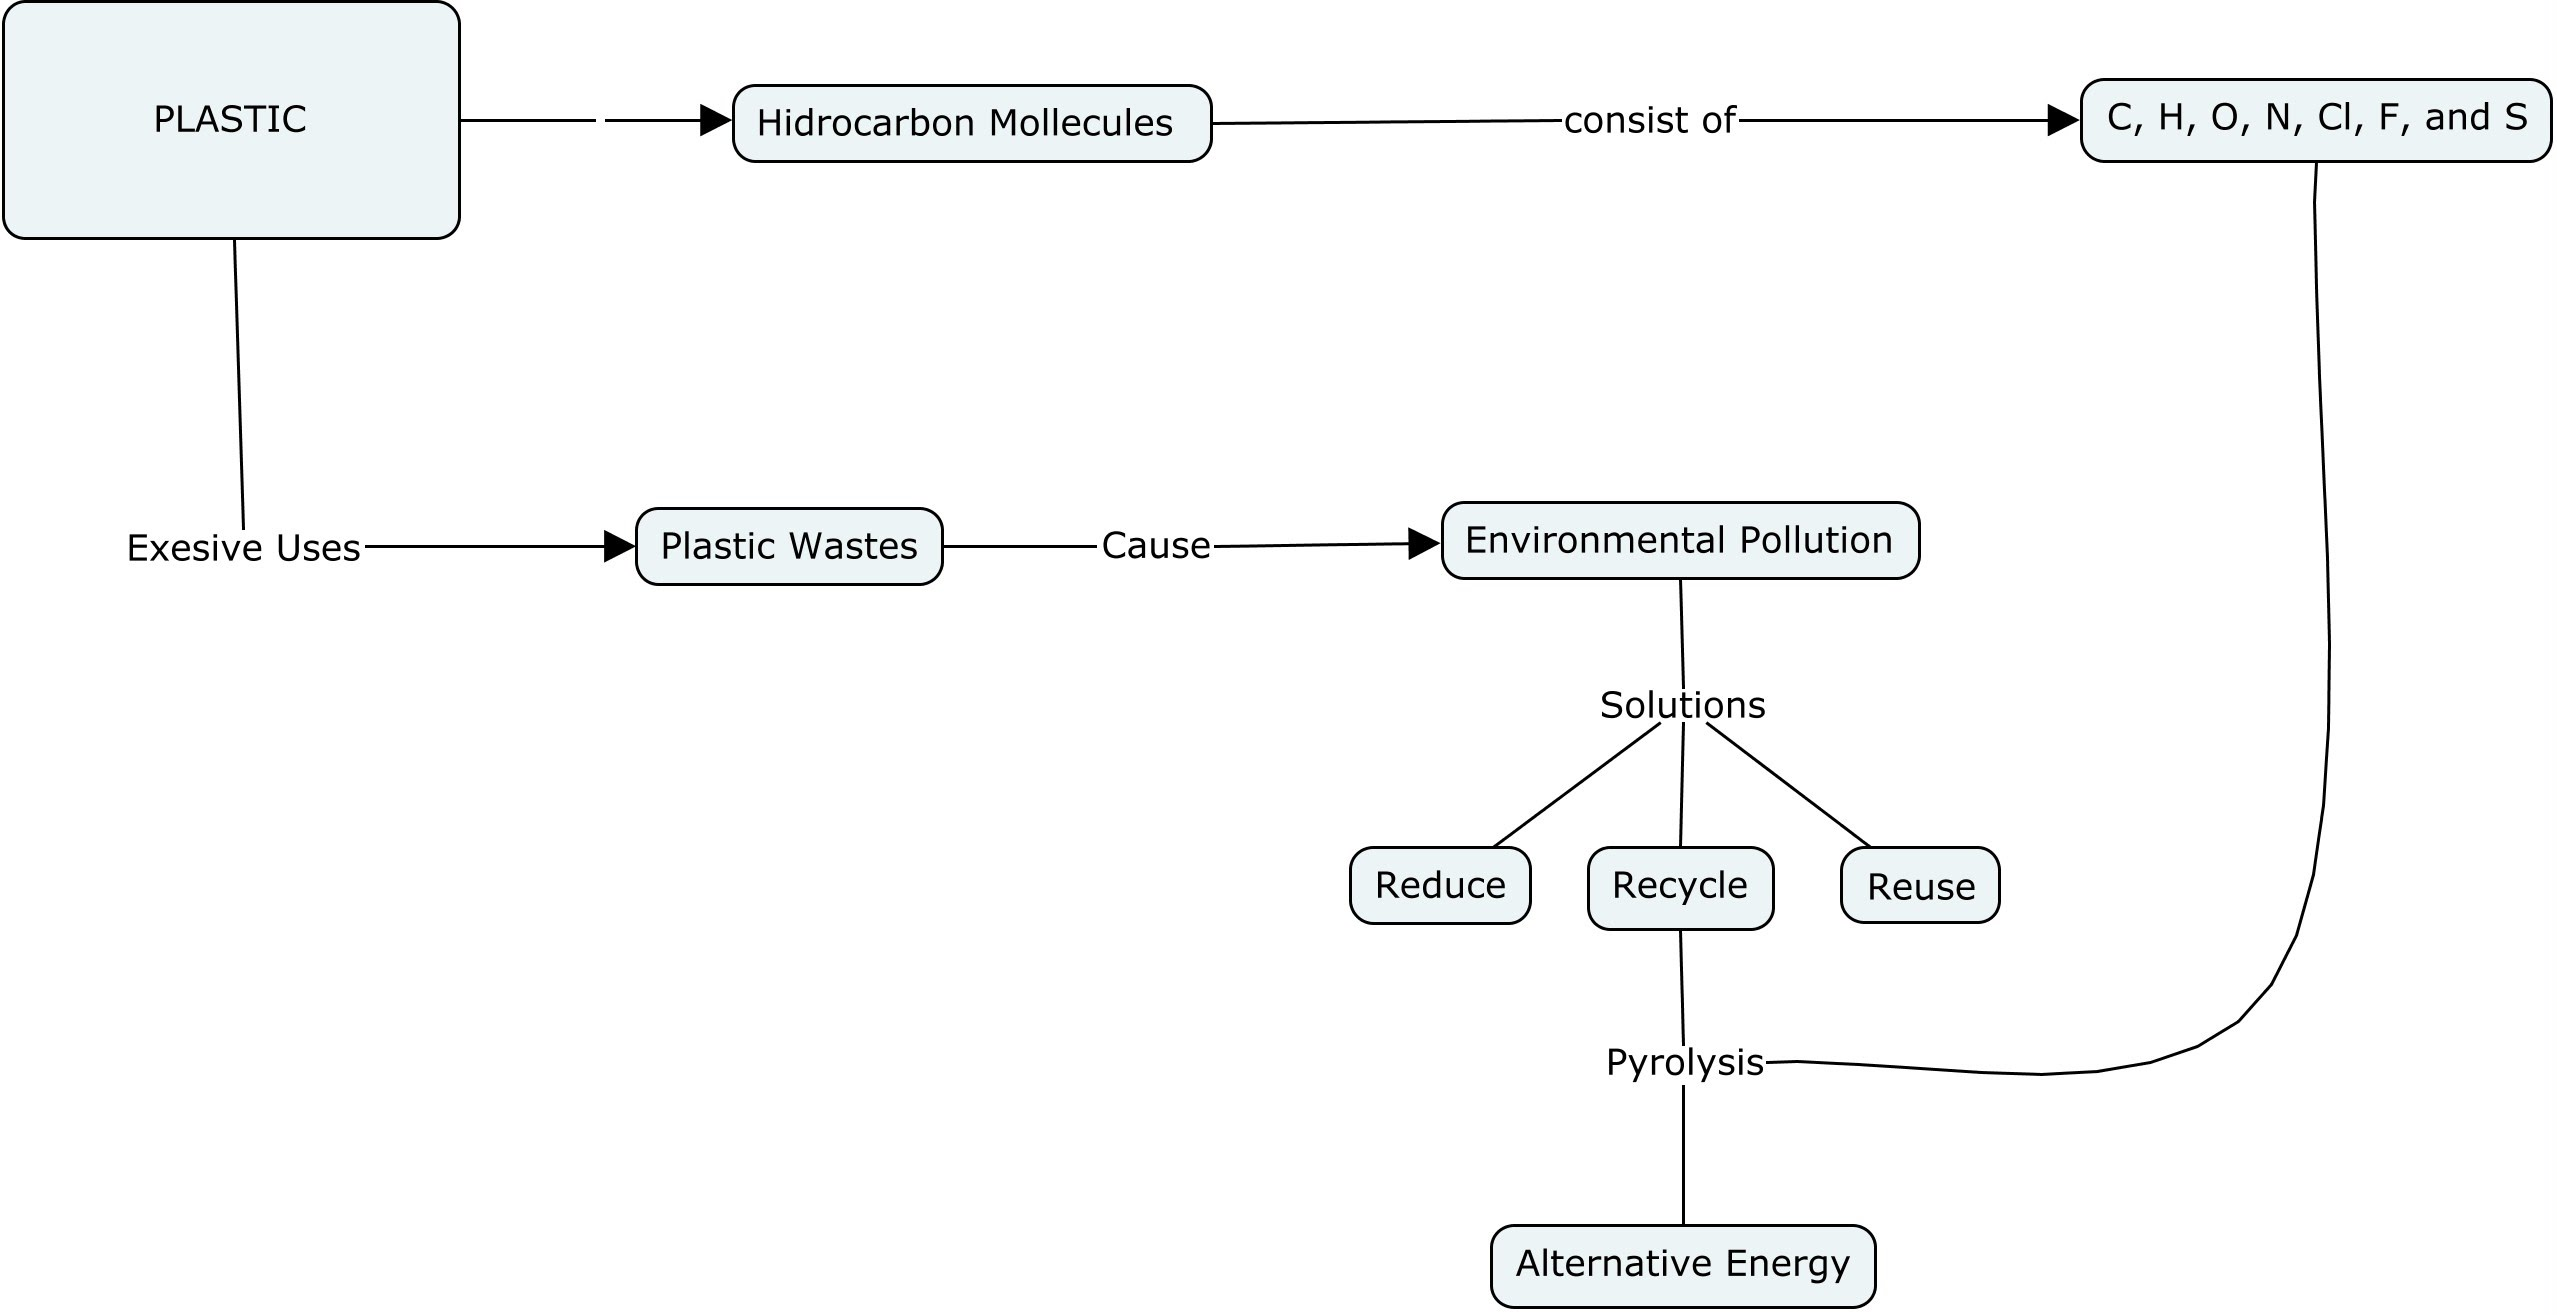 Example Of Concept Map 4.1.1 Create a Concept Map   Recycle Plastic Waste Into Fuel